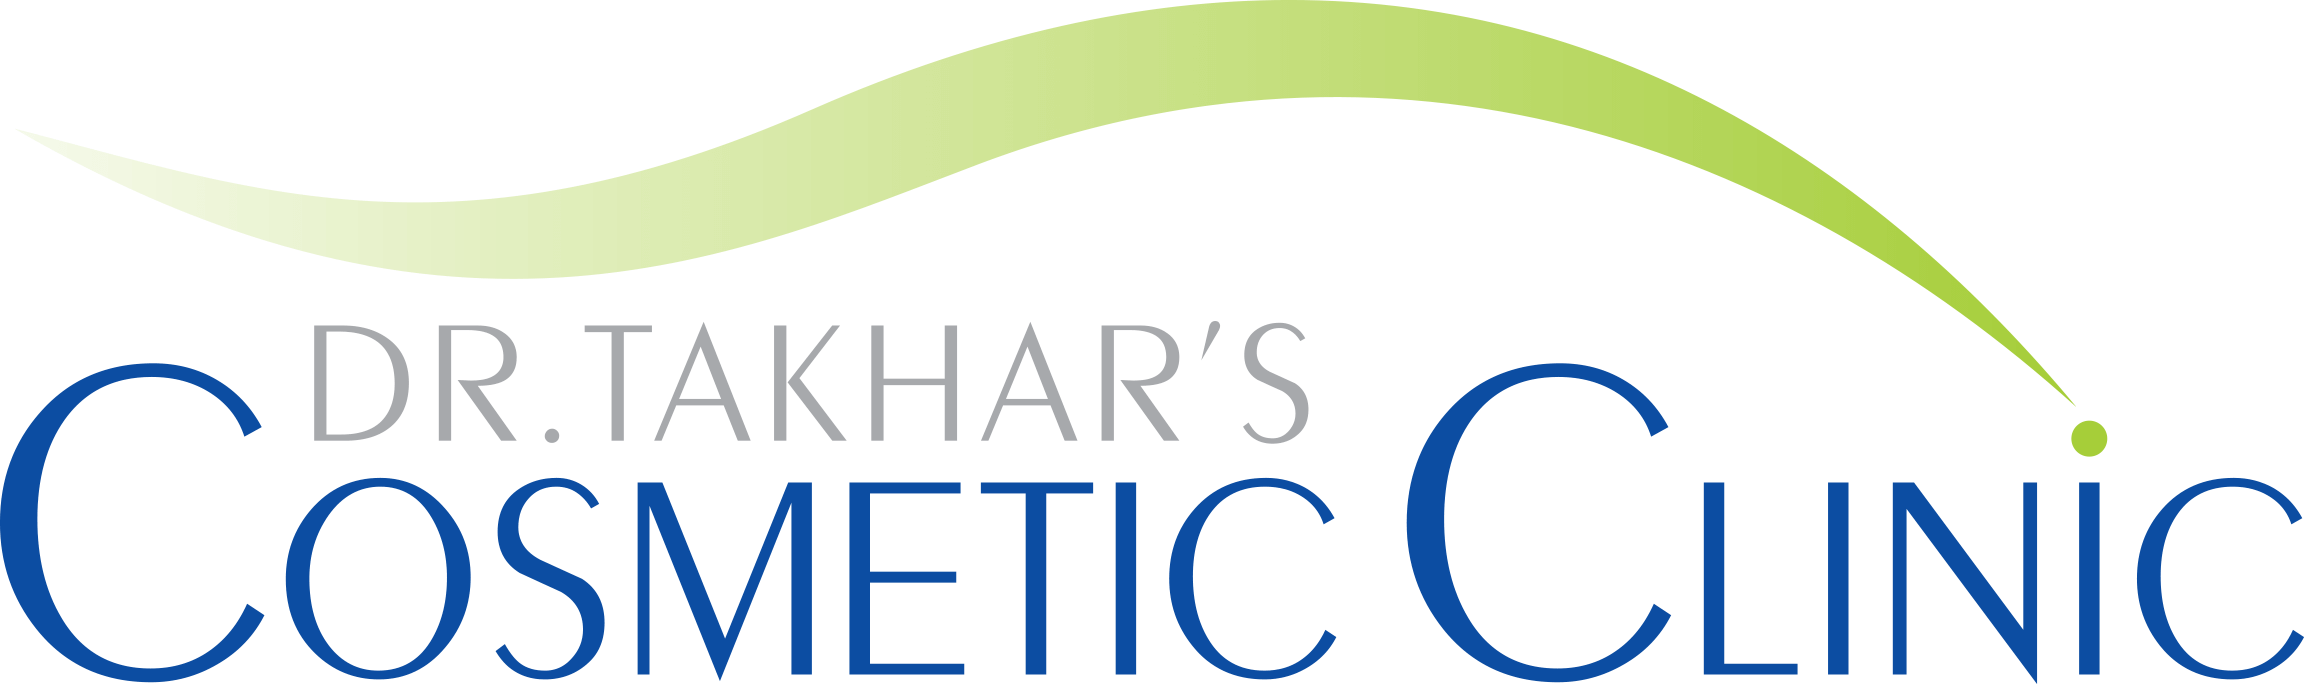 Dr. Takhar\'s Cosmetic Clinic   Botox, Fillers, Lasers